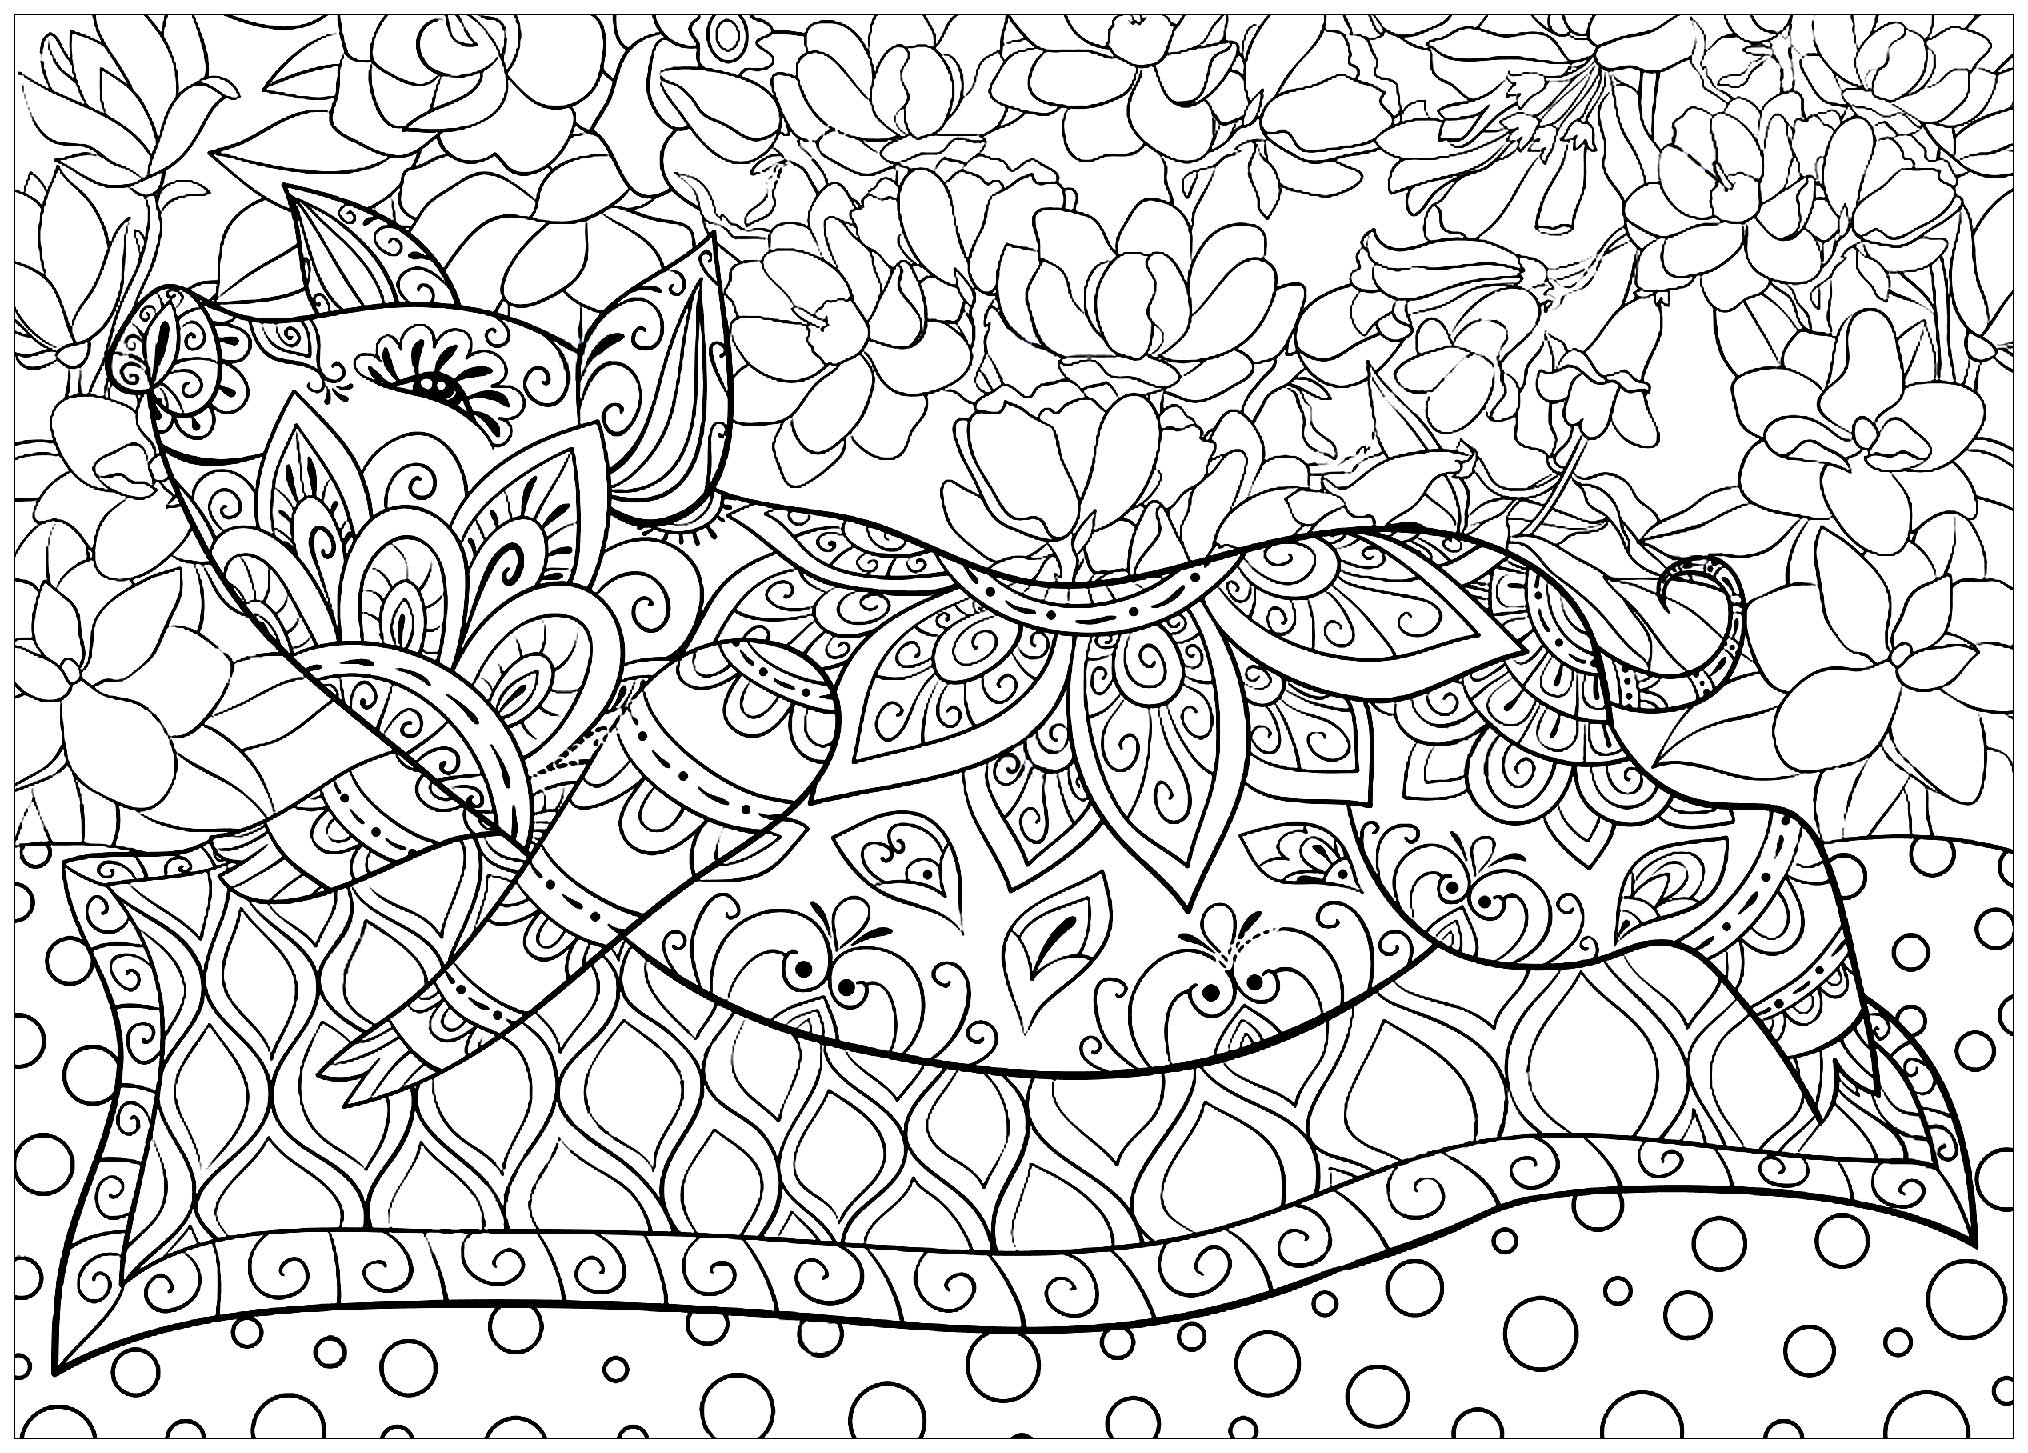 Pig carpet flowers - Pigs Adult Coloring Pages